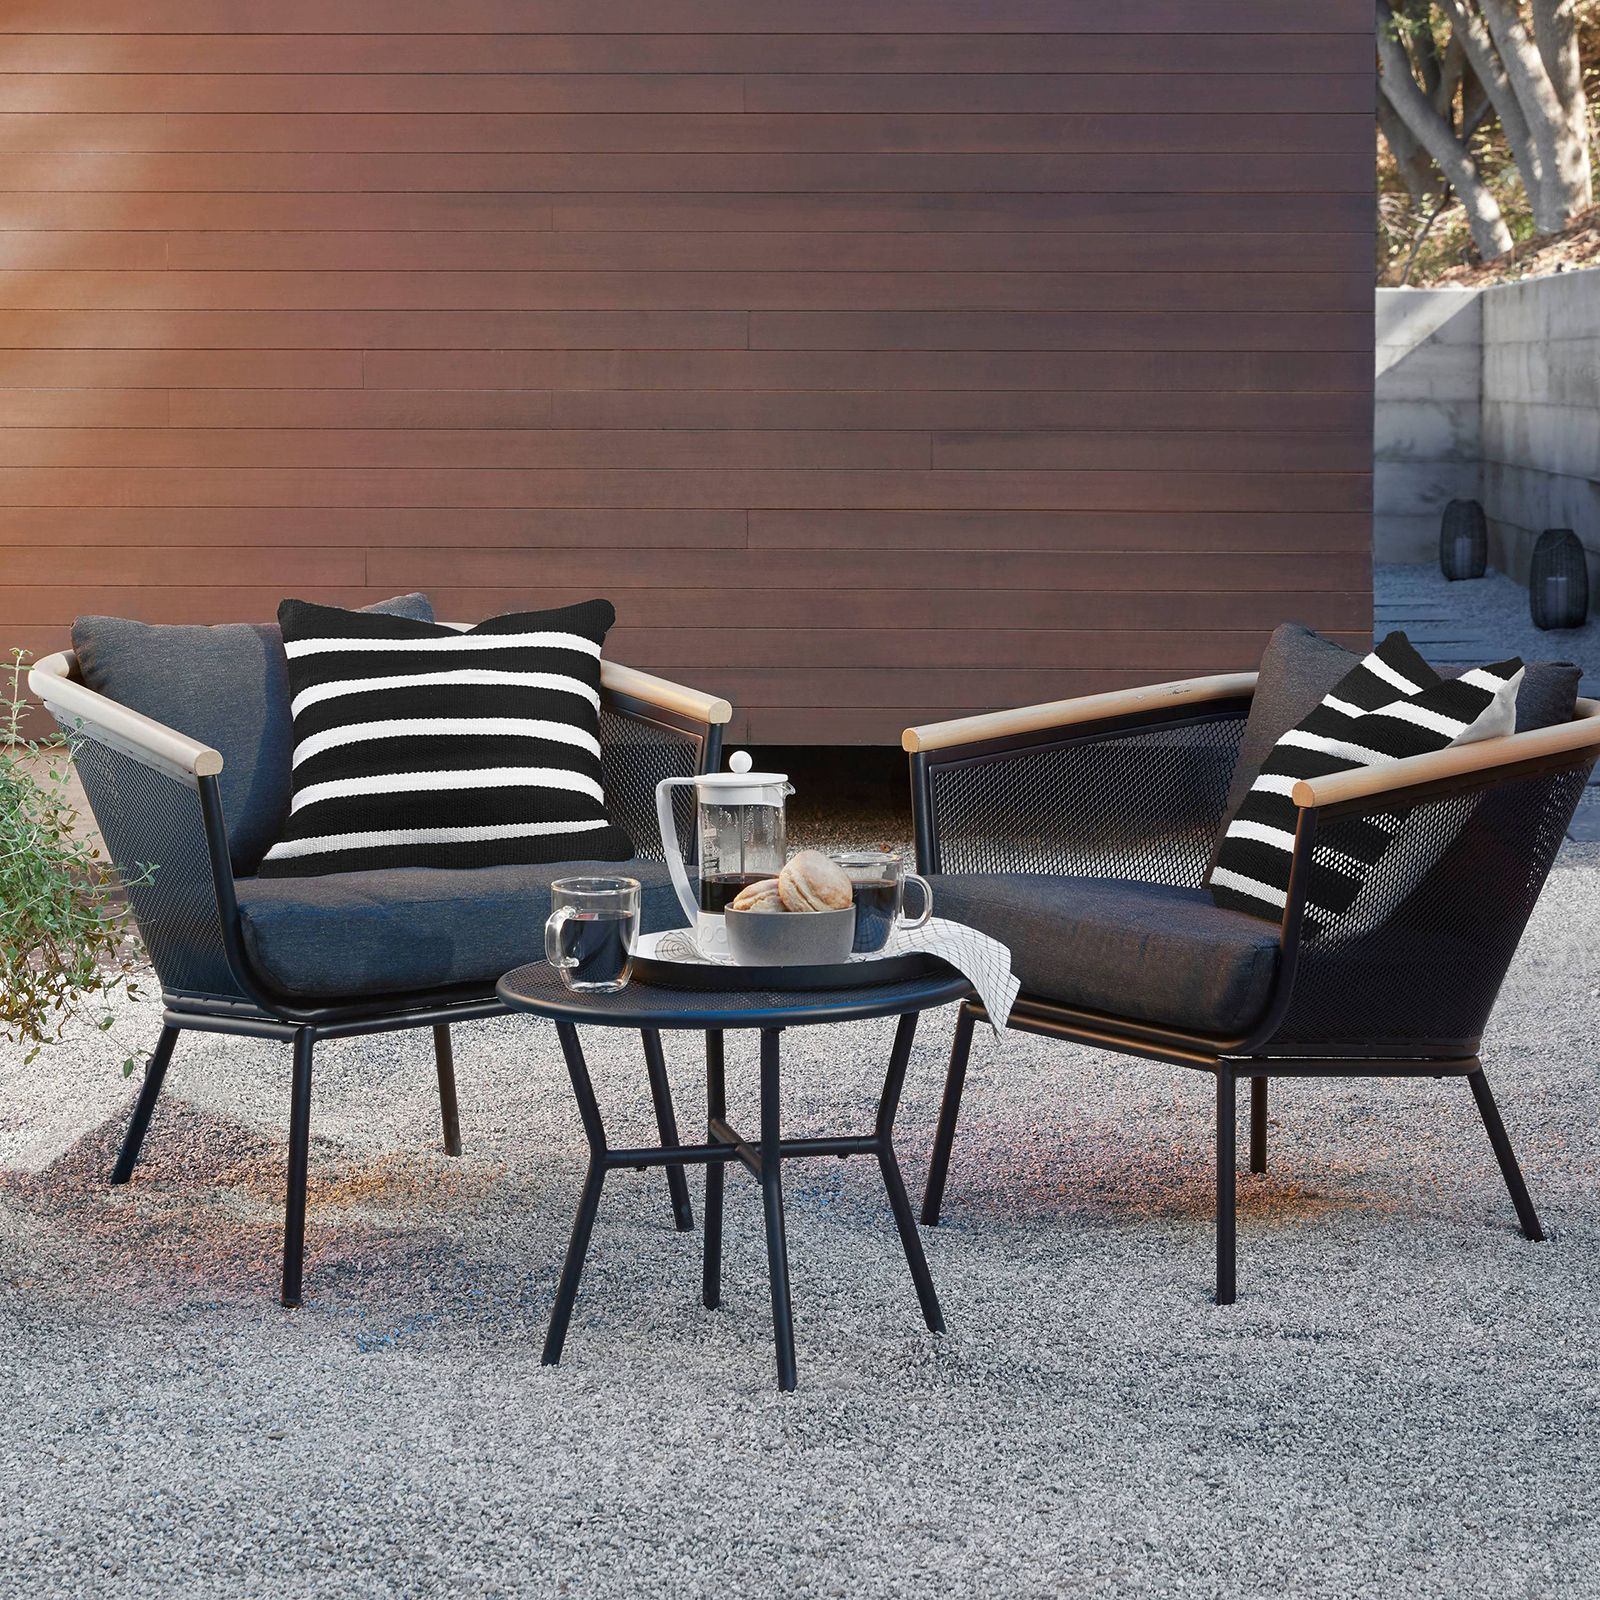 target white chairs outdoor